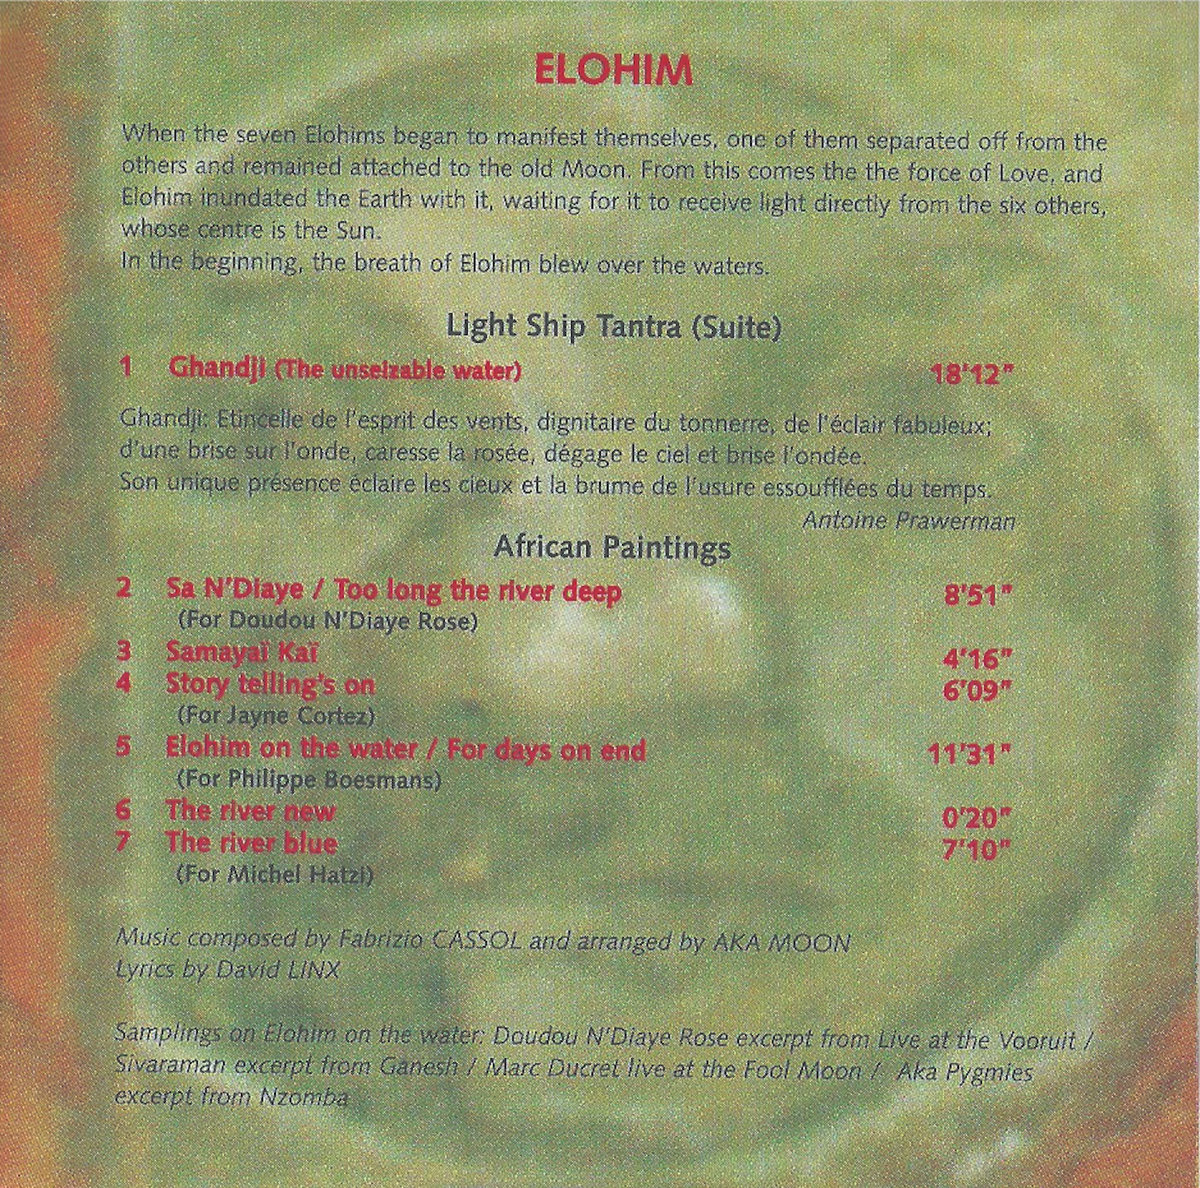 Album Elohim Produced By Guy Segers On Carbon 7 Label Includes Unlimited Streaming Of